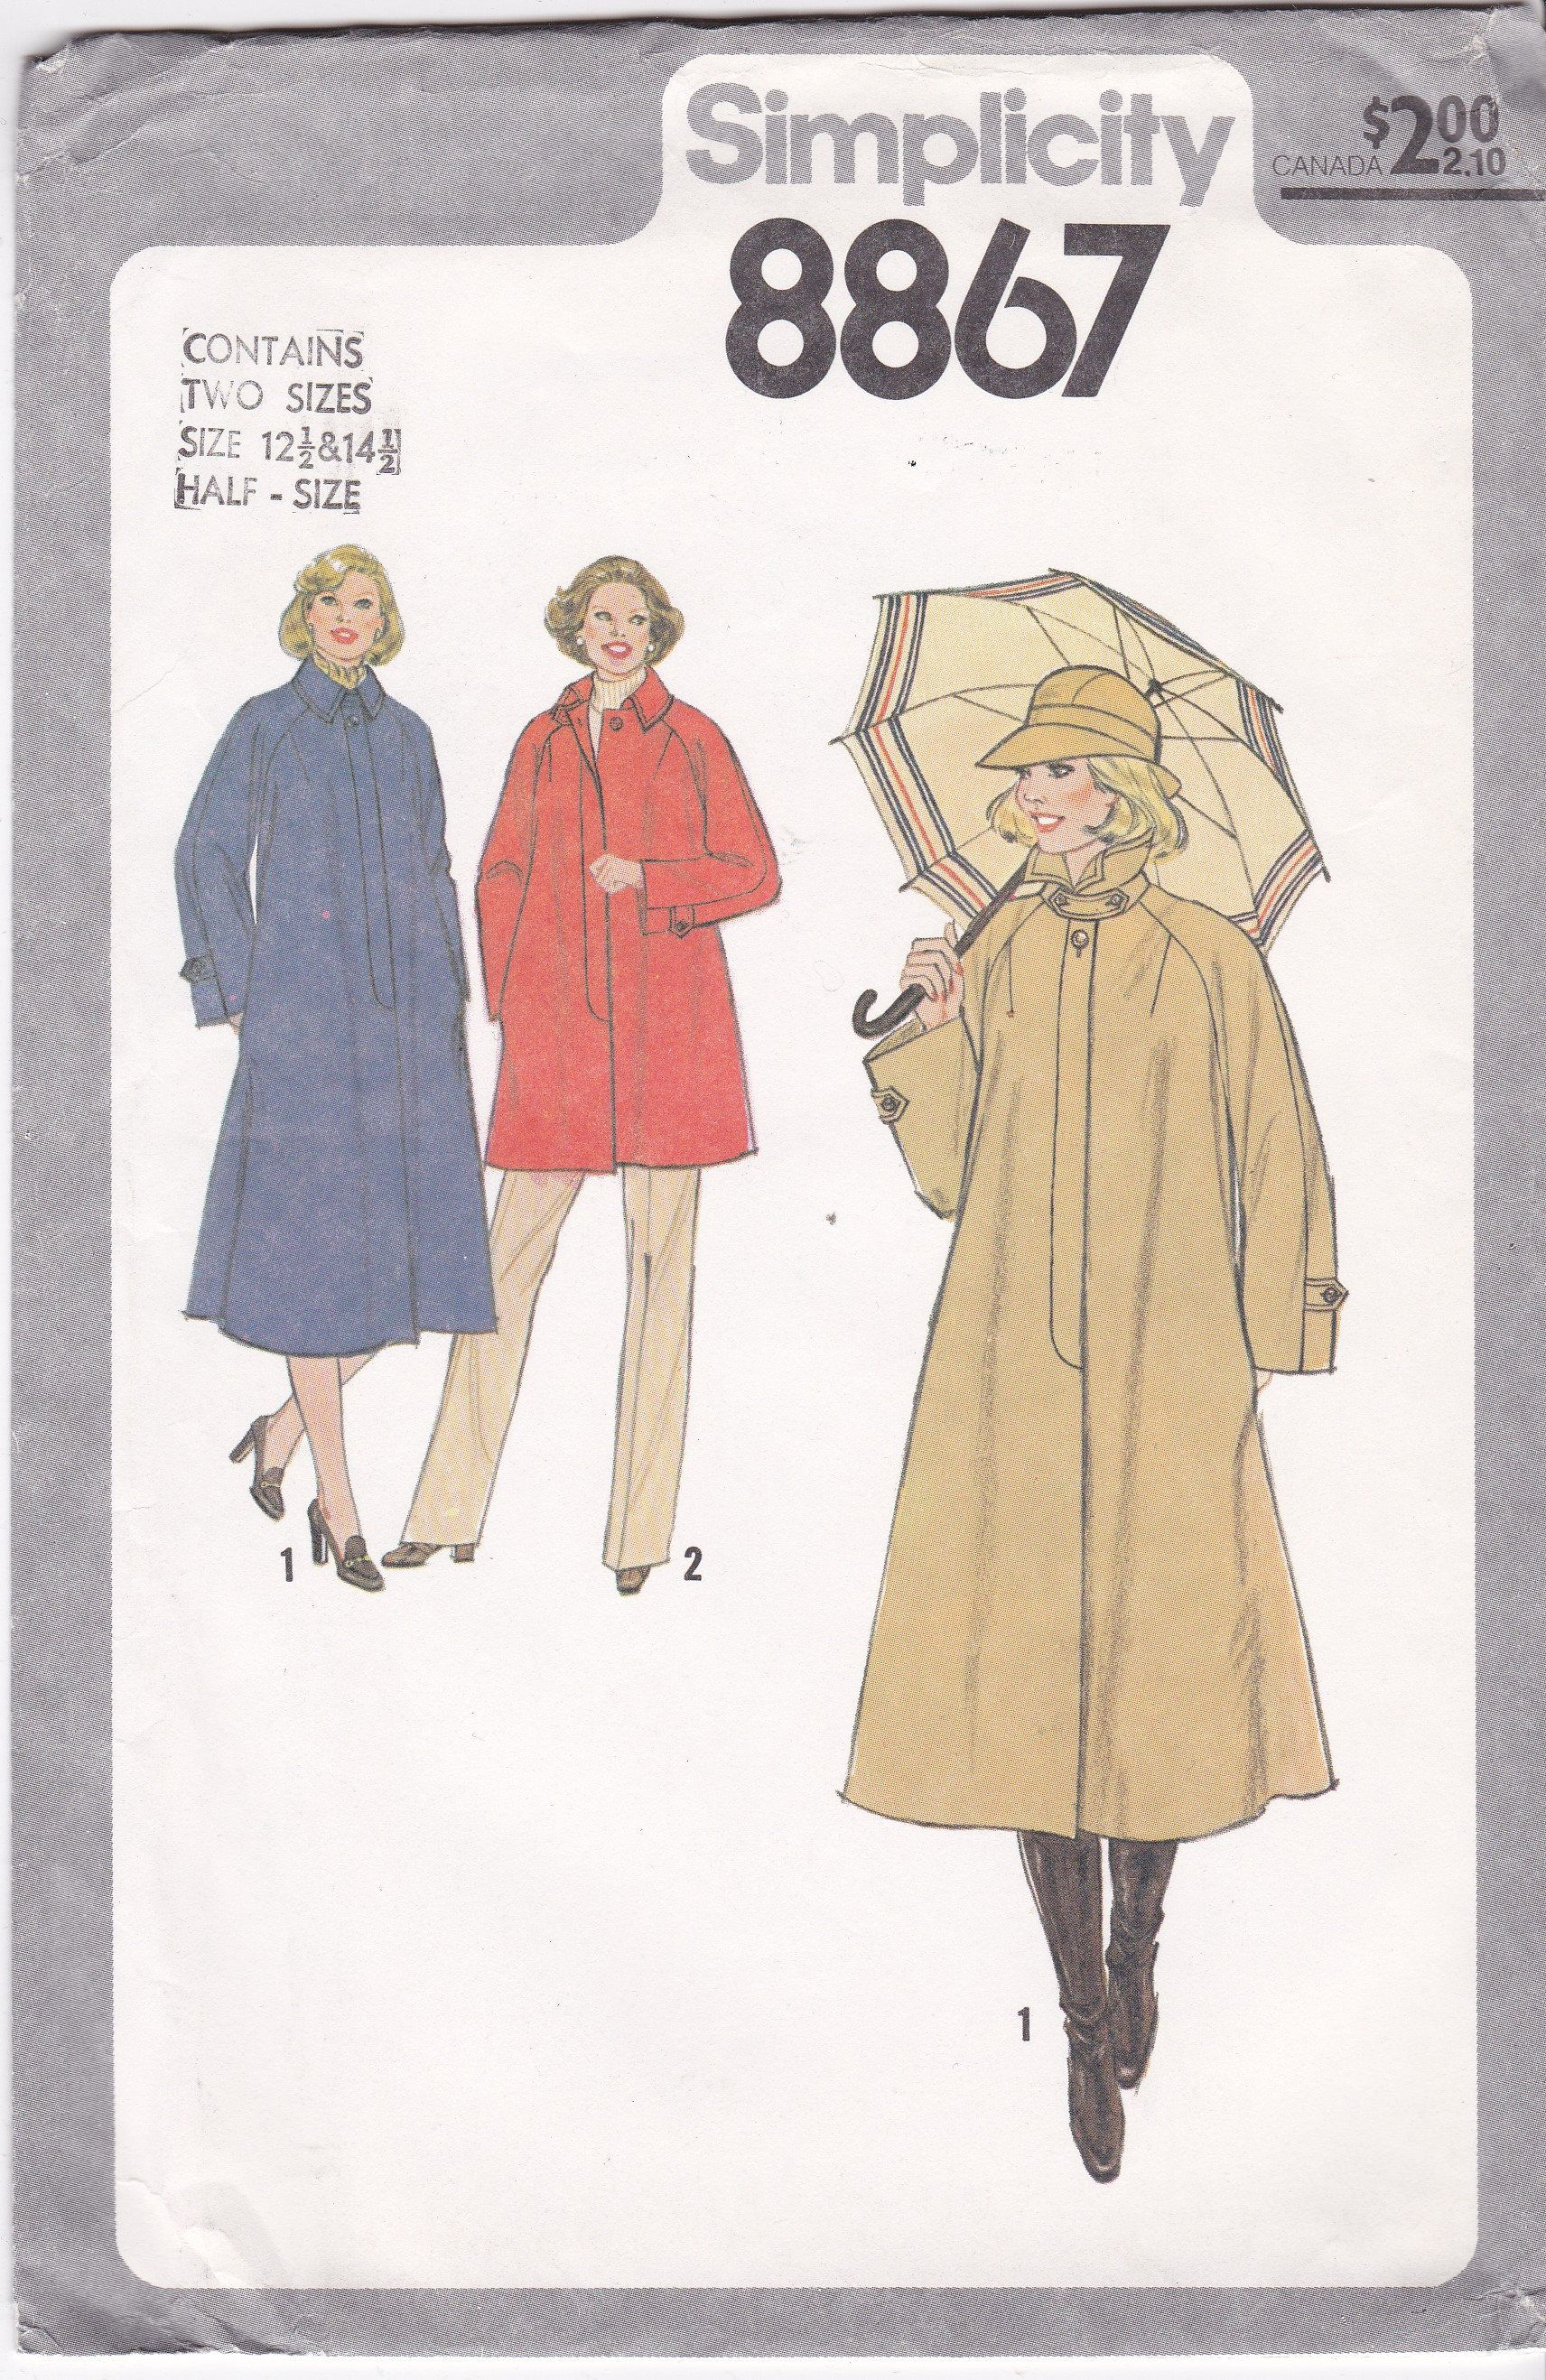 Coat Patterns Misses Half Size 12 5 14 5 Bust 35 Or 37 Lined